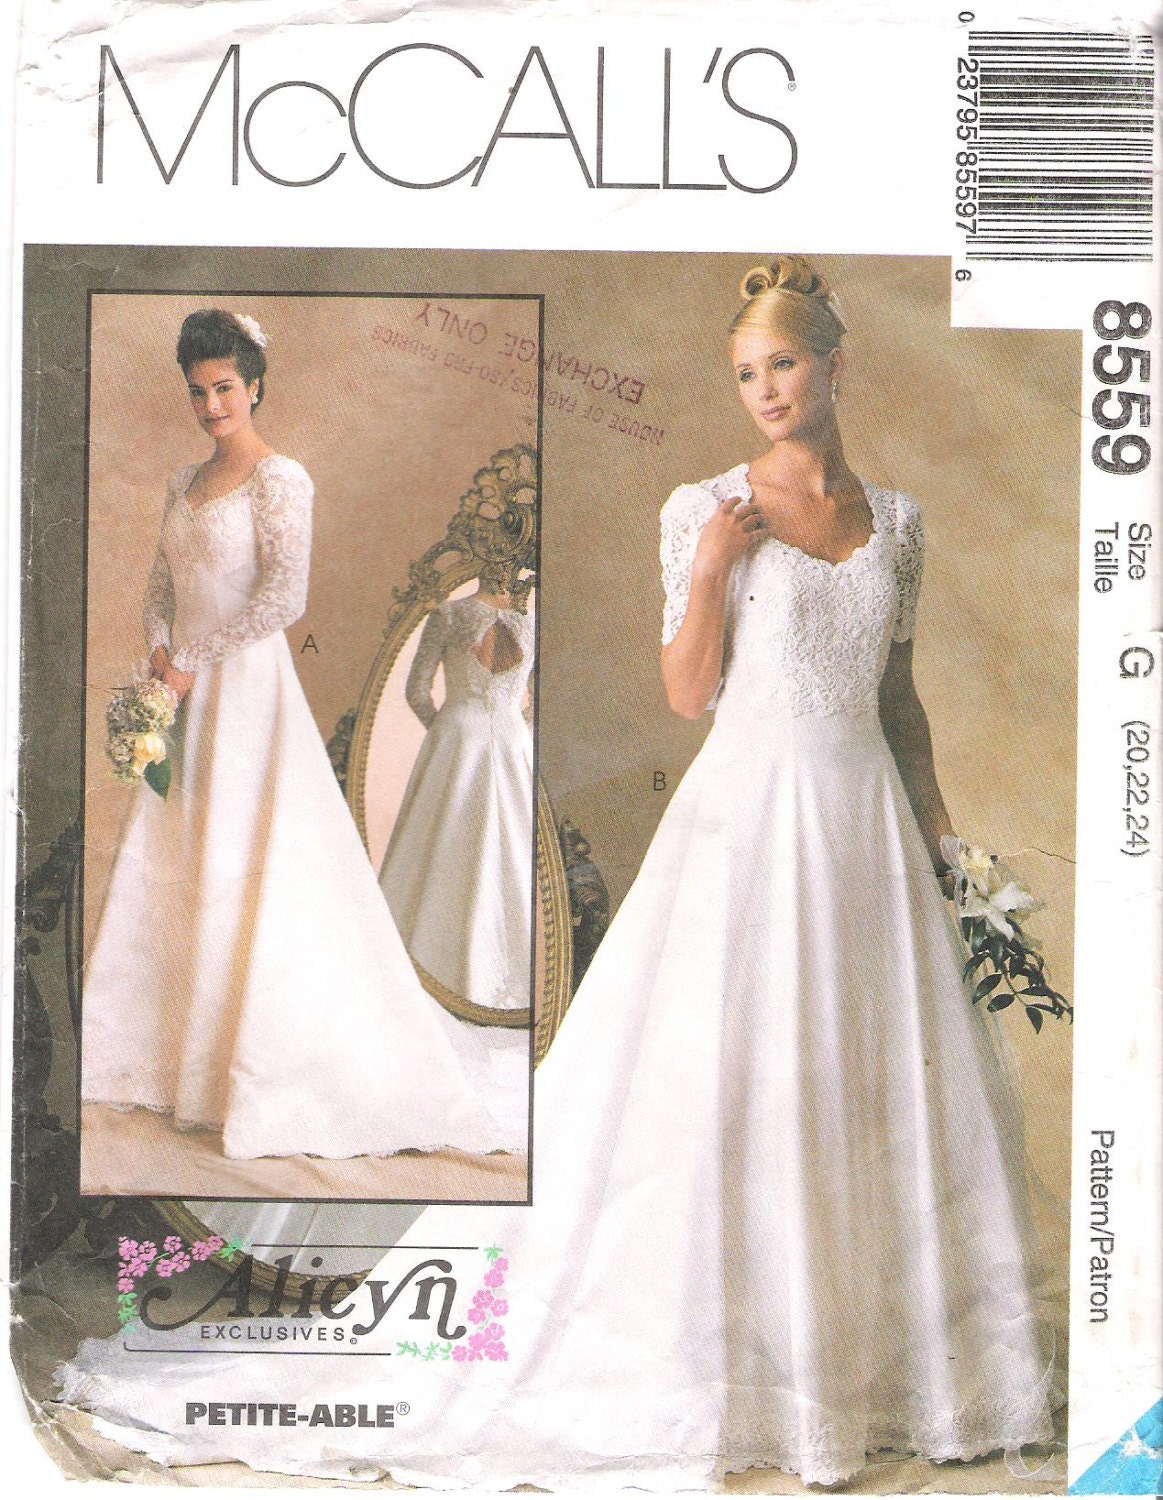 Items Similar To McCalls 8559 Wedding Dress Sewing Pattern Large Size On Etsy